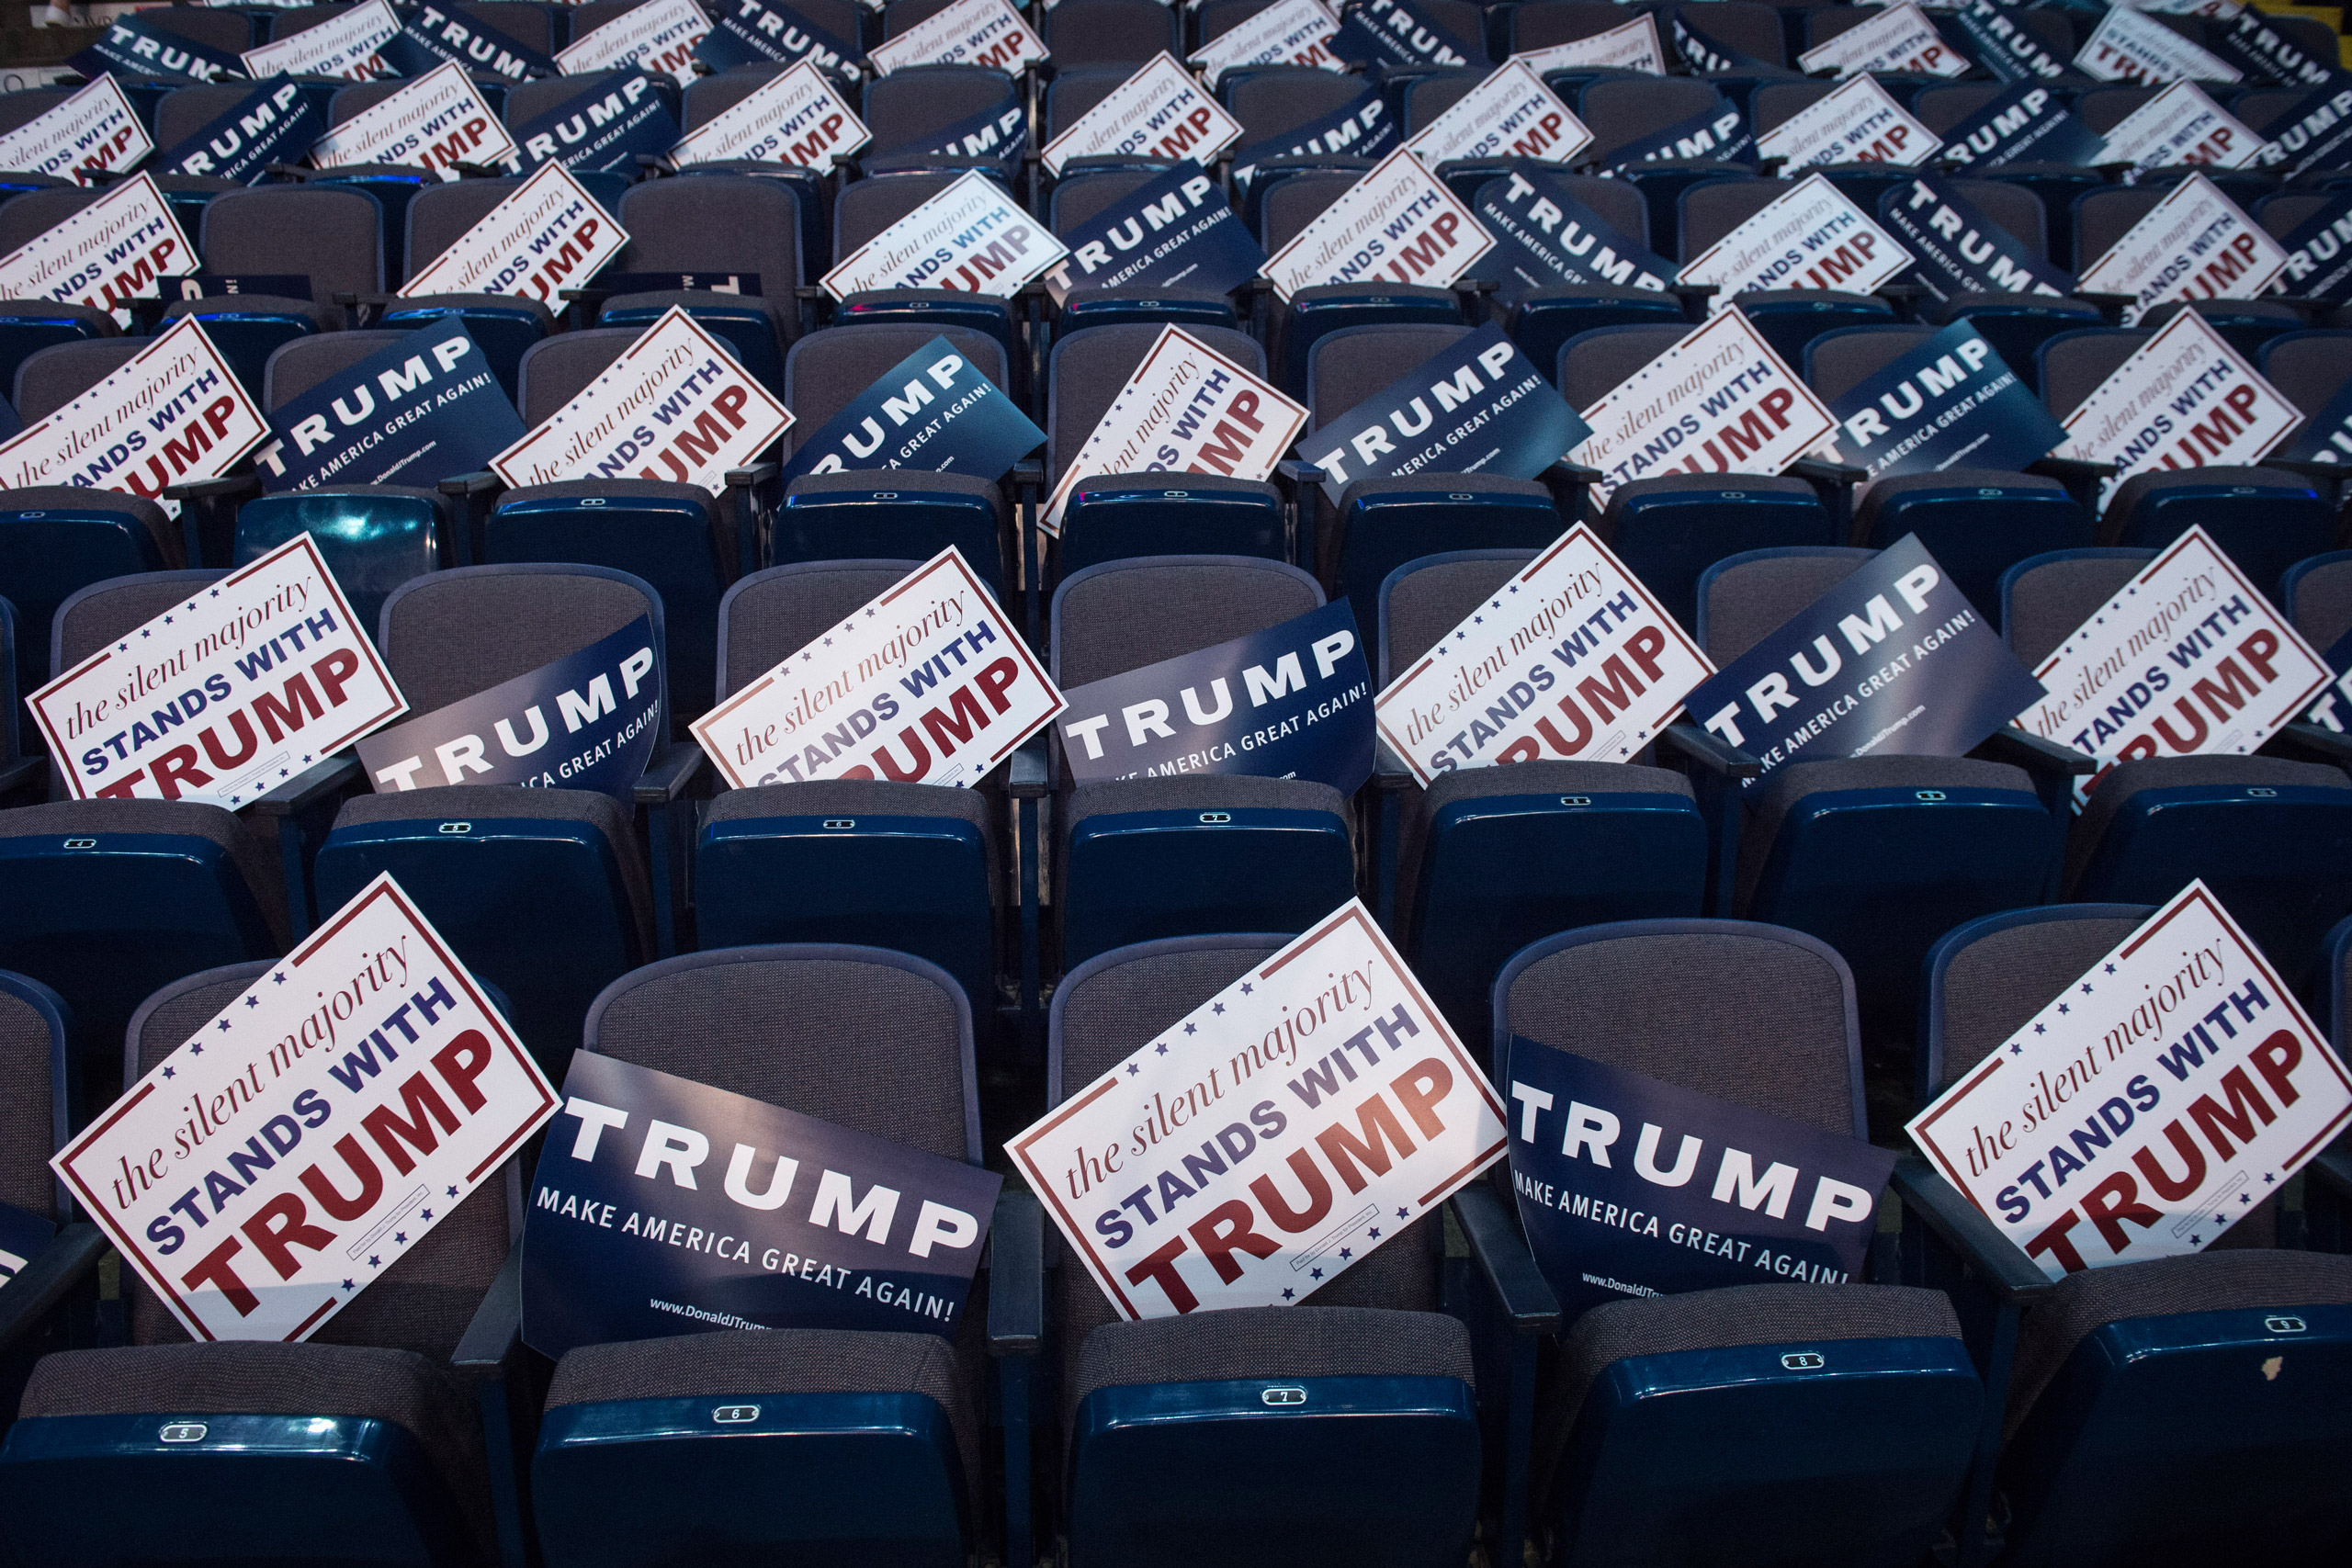 Signs are seen in empty seats before republican presidential candidate Donald Trump speaks during a campaign event at the Times Union Center in Albany, NY on April 11, 2016.